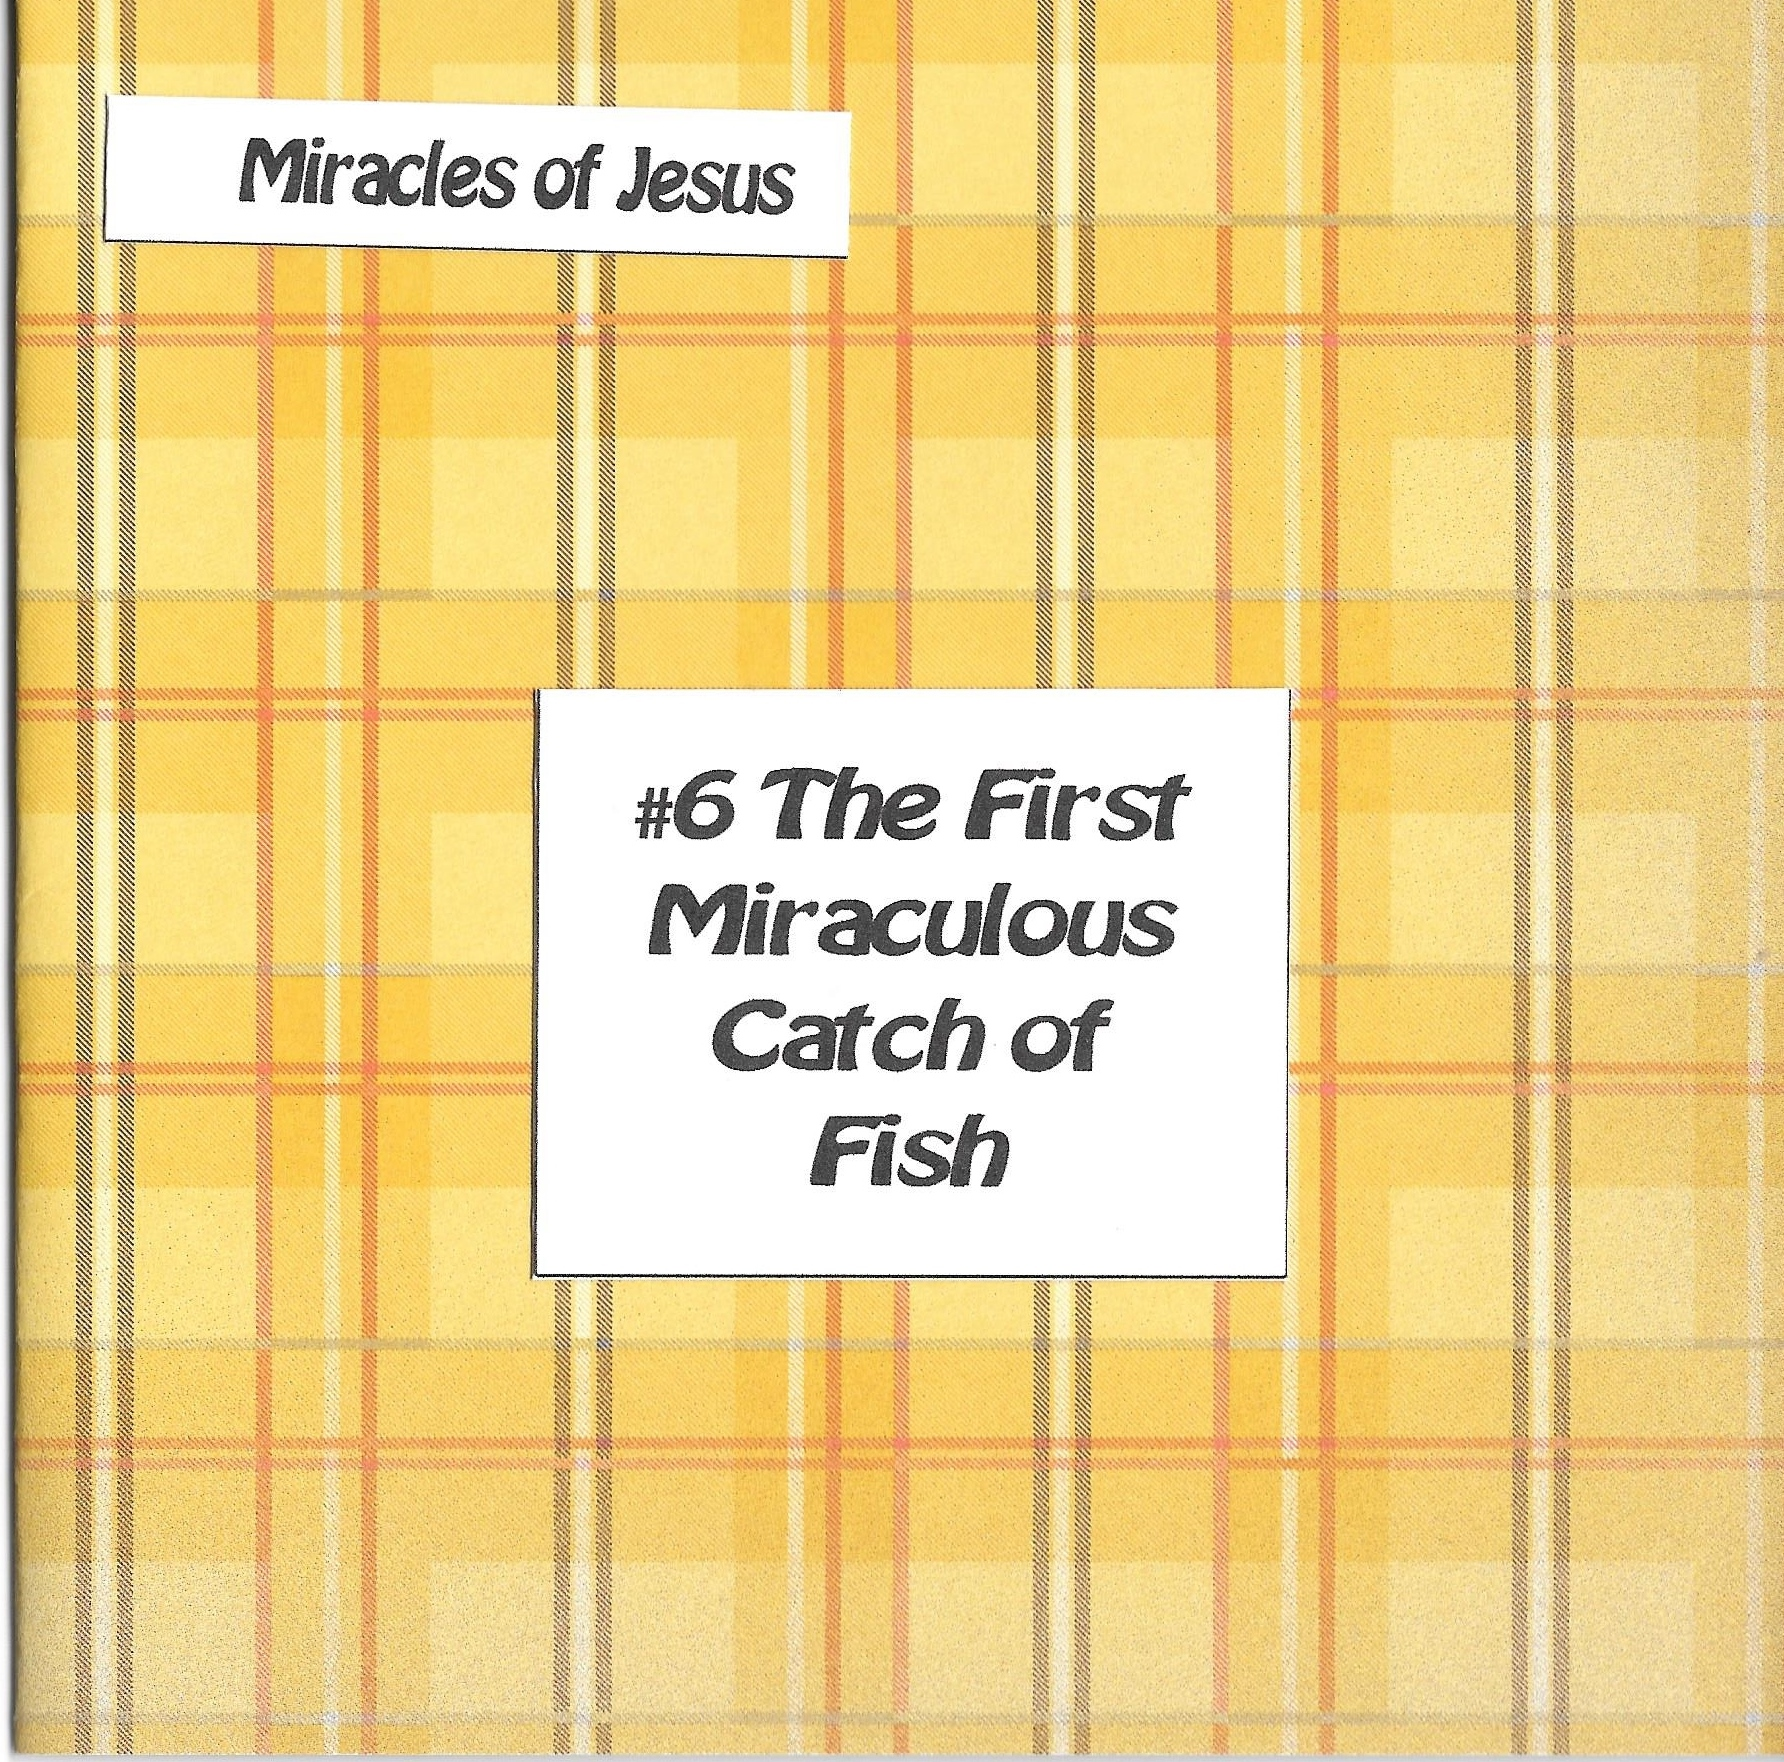 #6 The First Miraculous Catch Of Fish